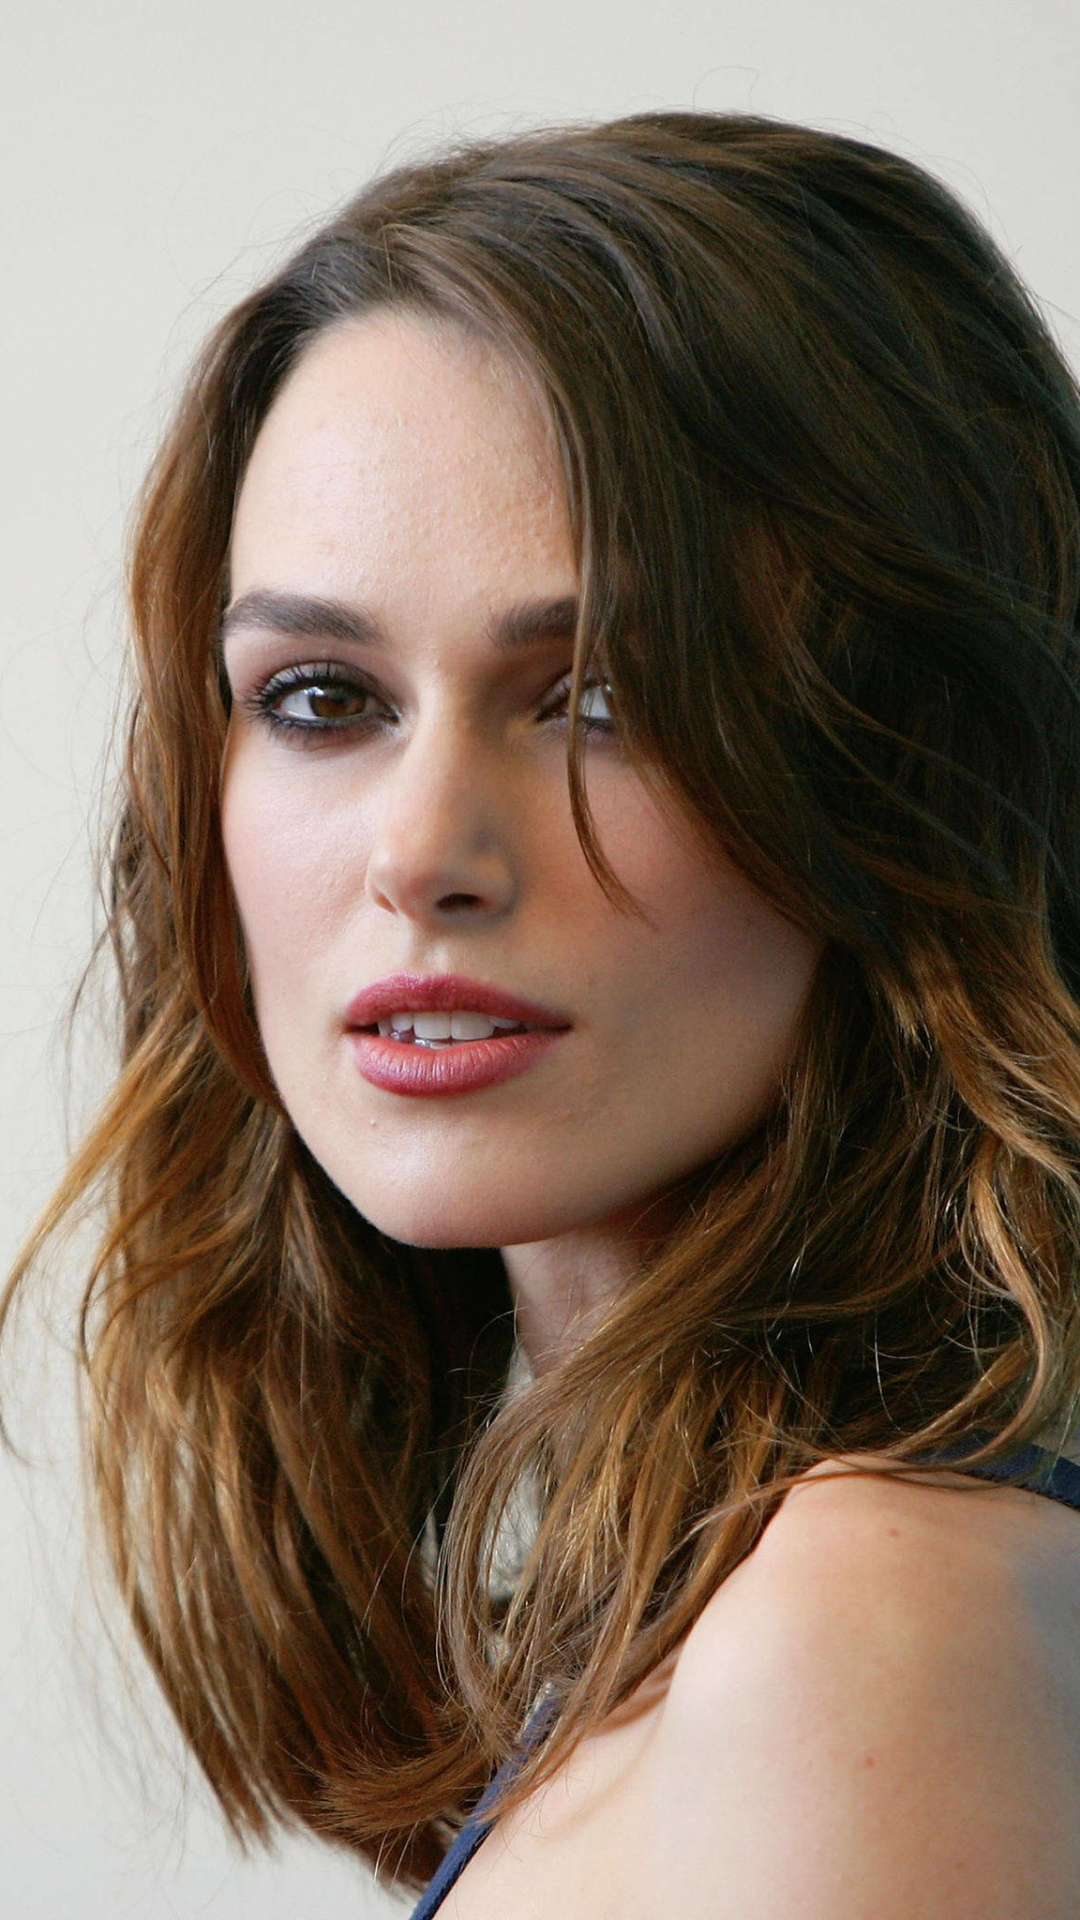 1080x1920 - Keira Knightley Wallpapers 13